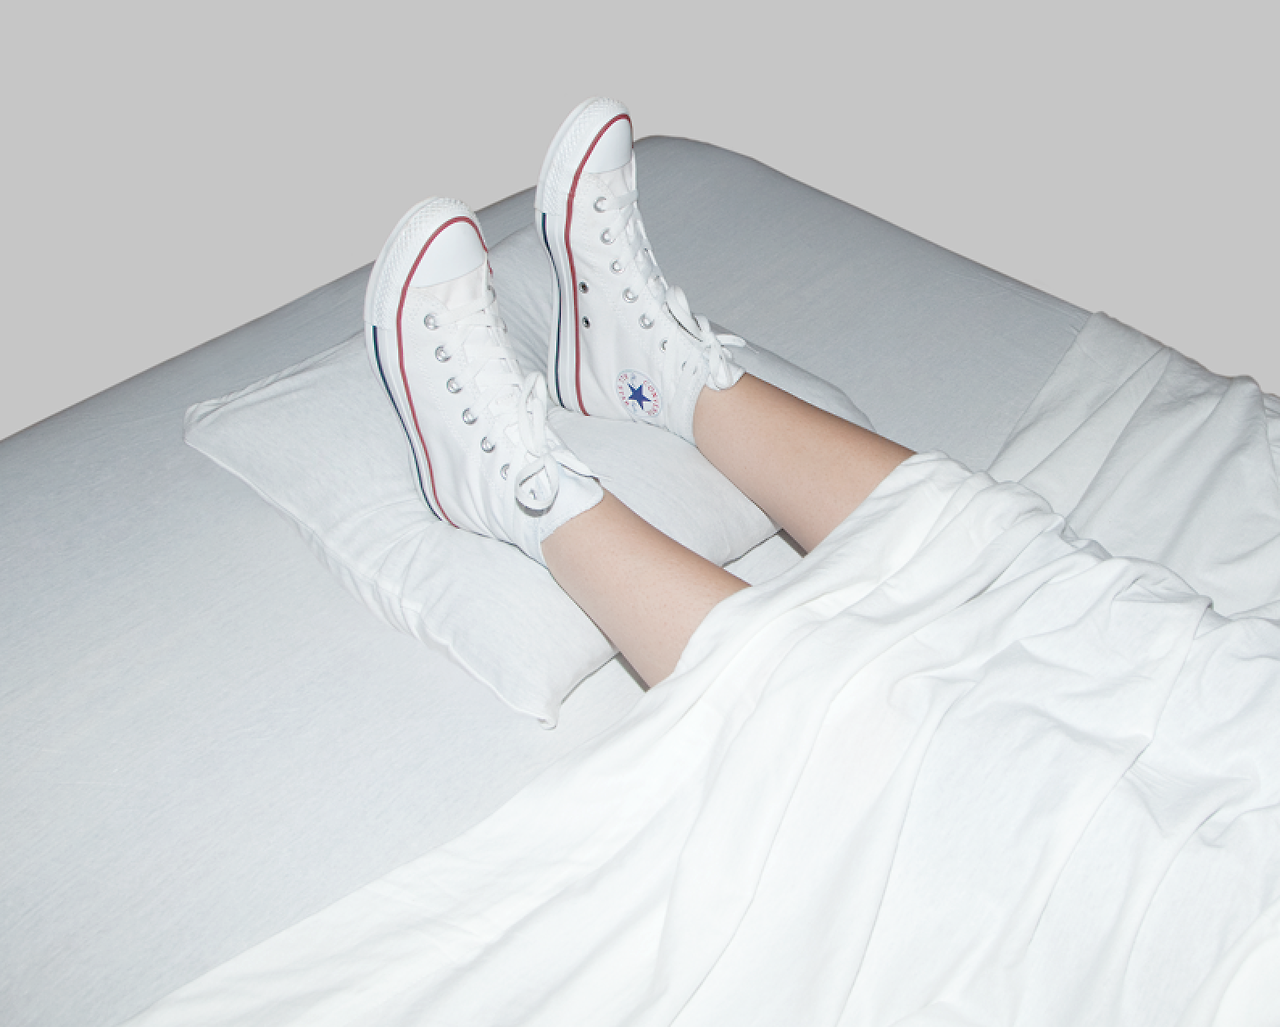 Olivia Locher, I Fought the Law (2014) In North Dakota it's illegal to have shoes on in bed.